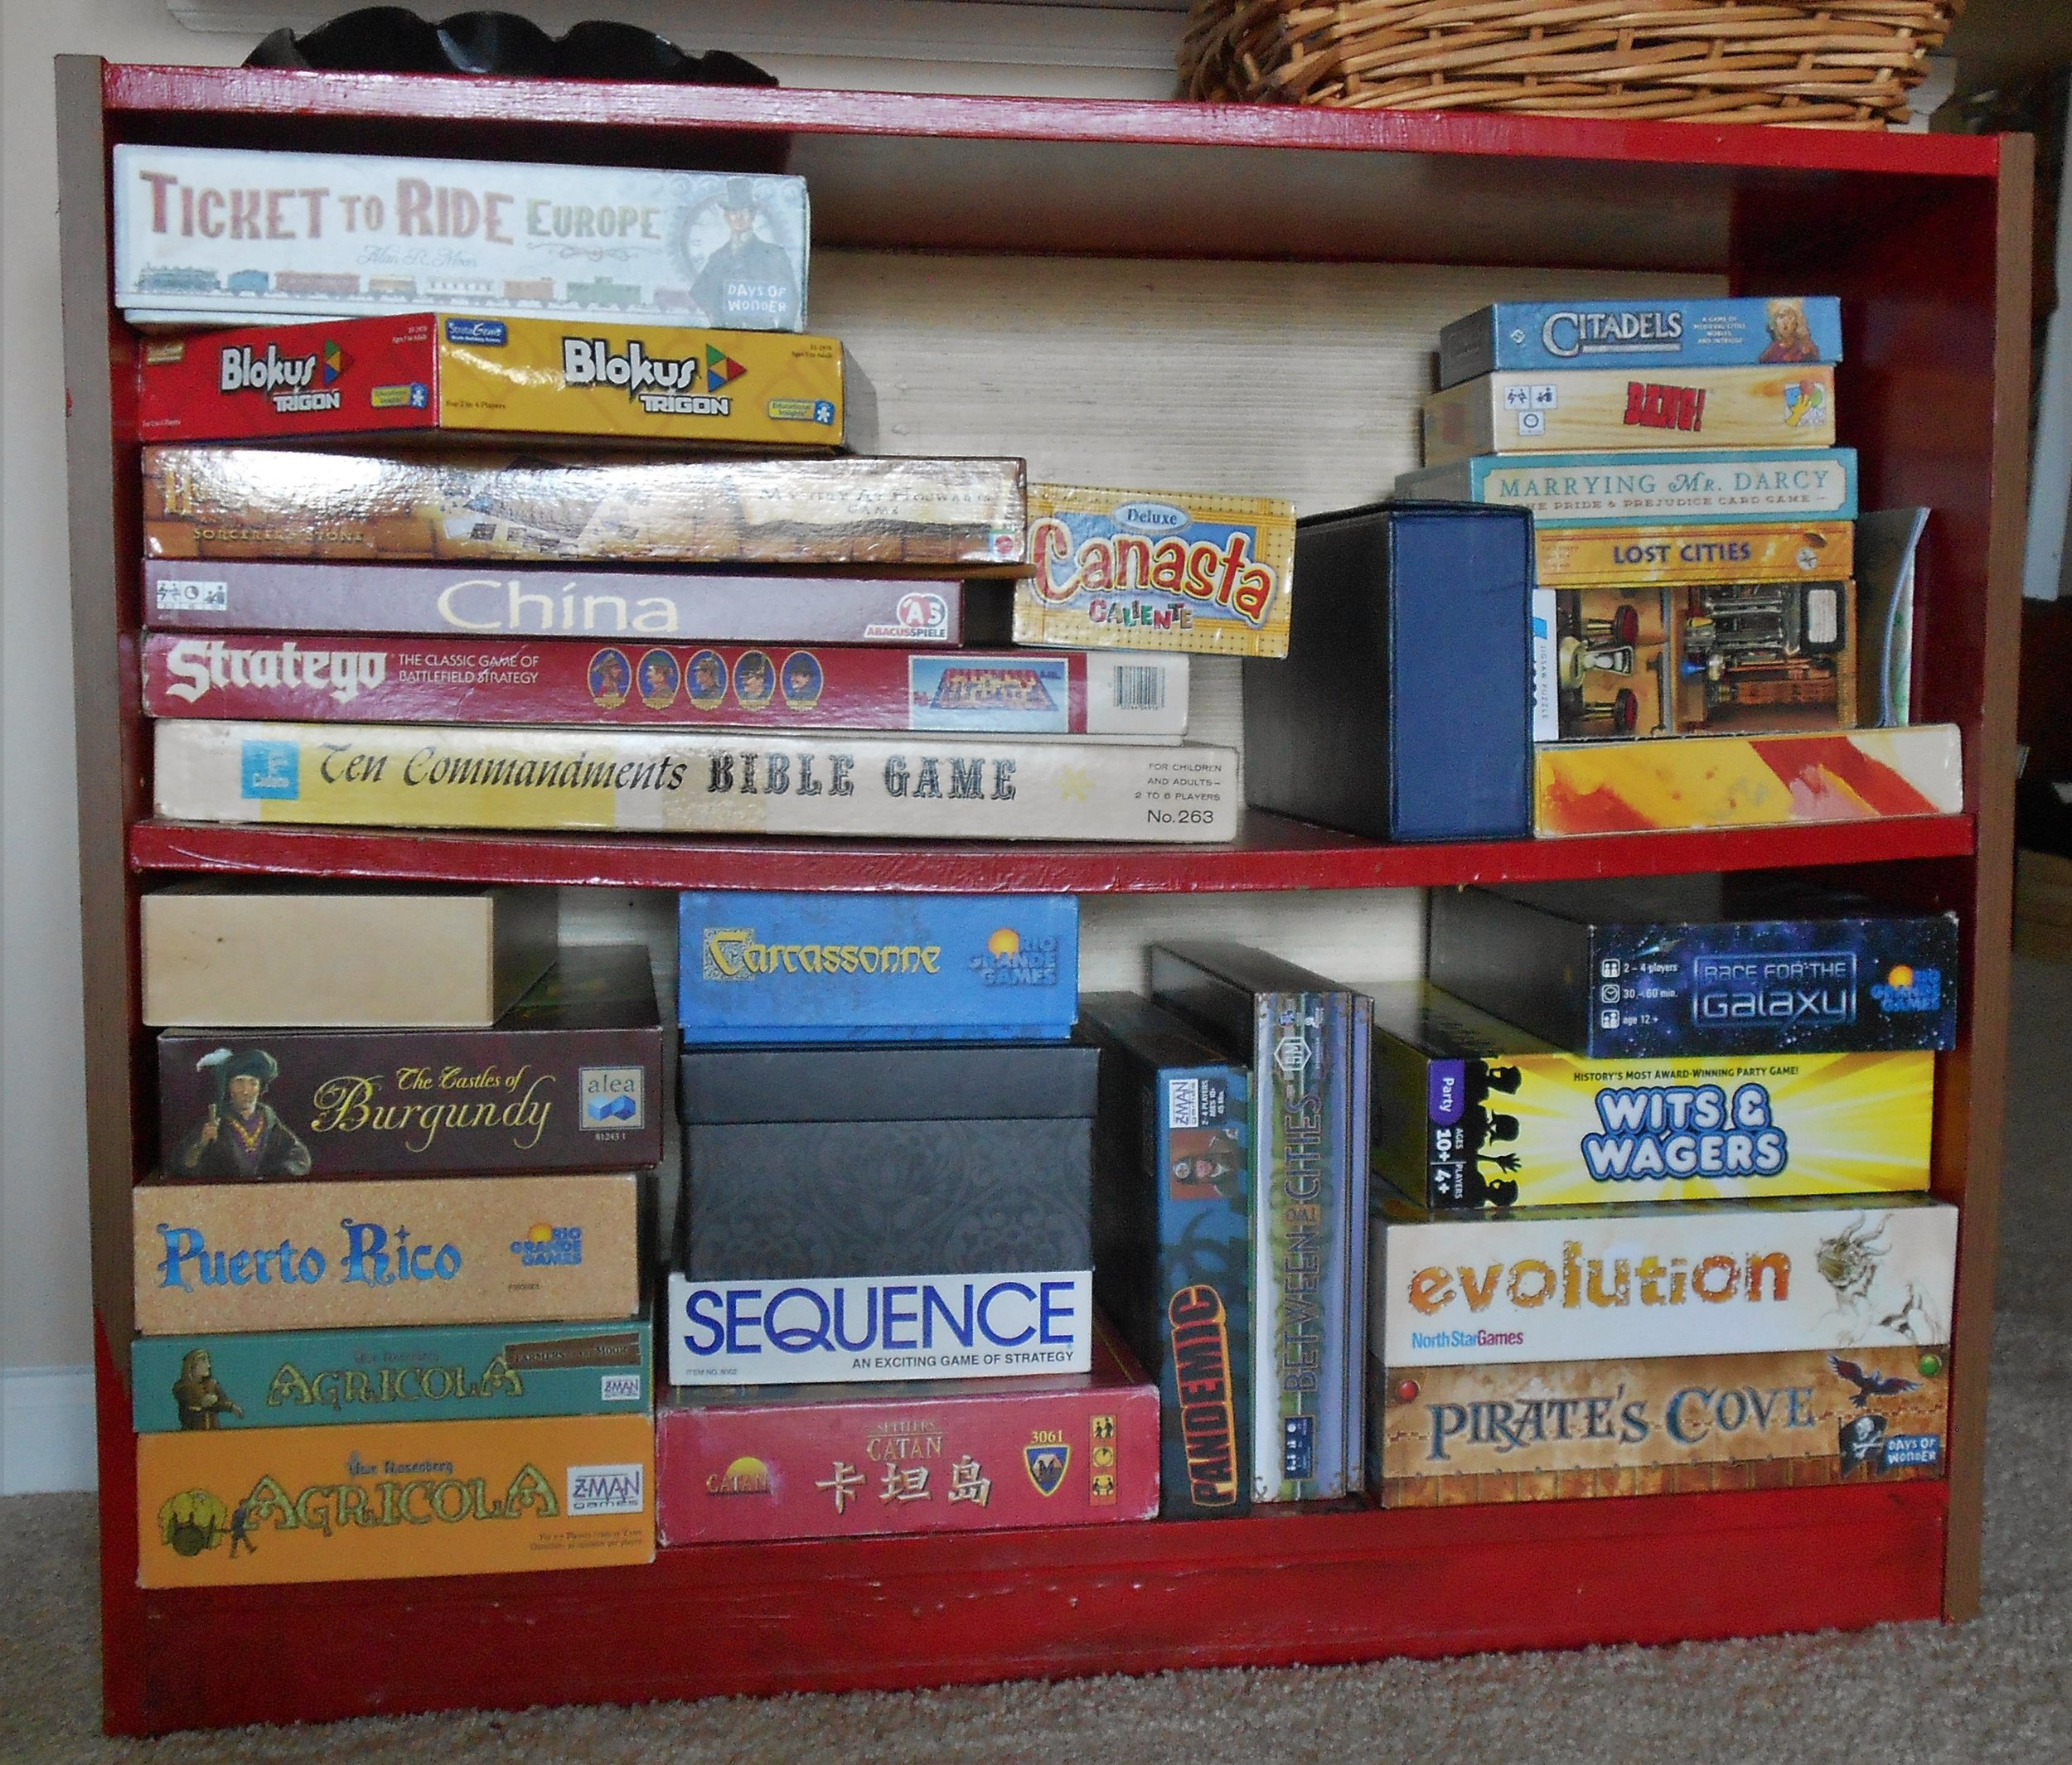 Our current board game collection (recently edited). In 2011, a coworker randomly handed down Carcassonne to Kate a few weeks before we got married. We took the game with us on our honeymoon and obsessively played at least once a day. We've never looked back.